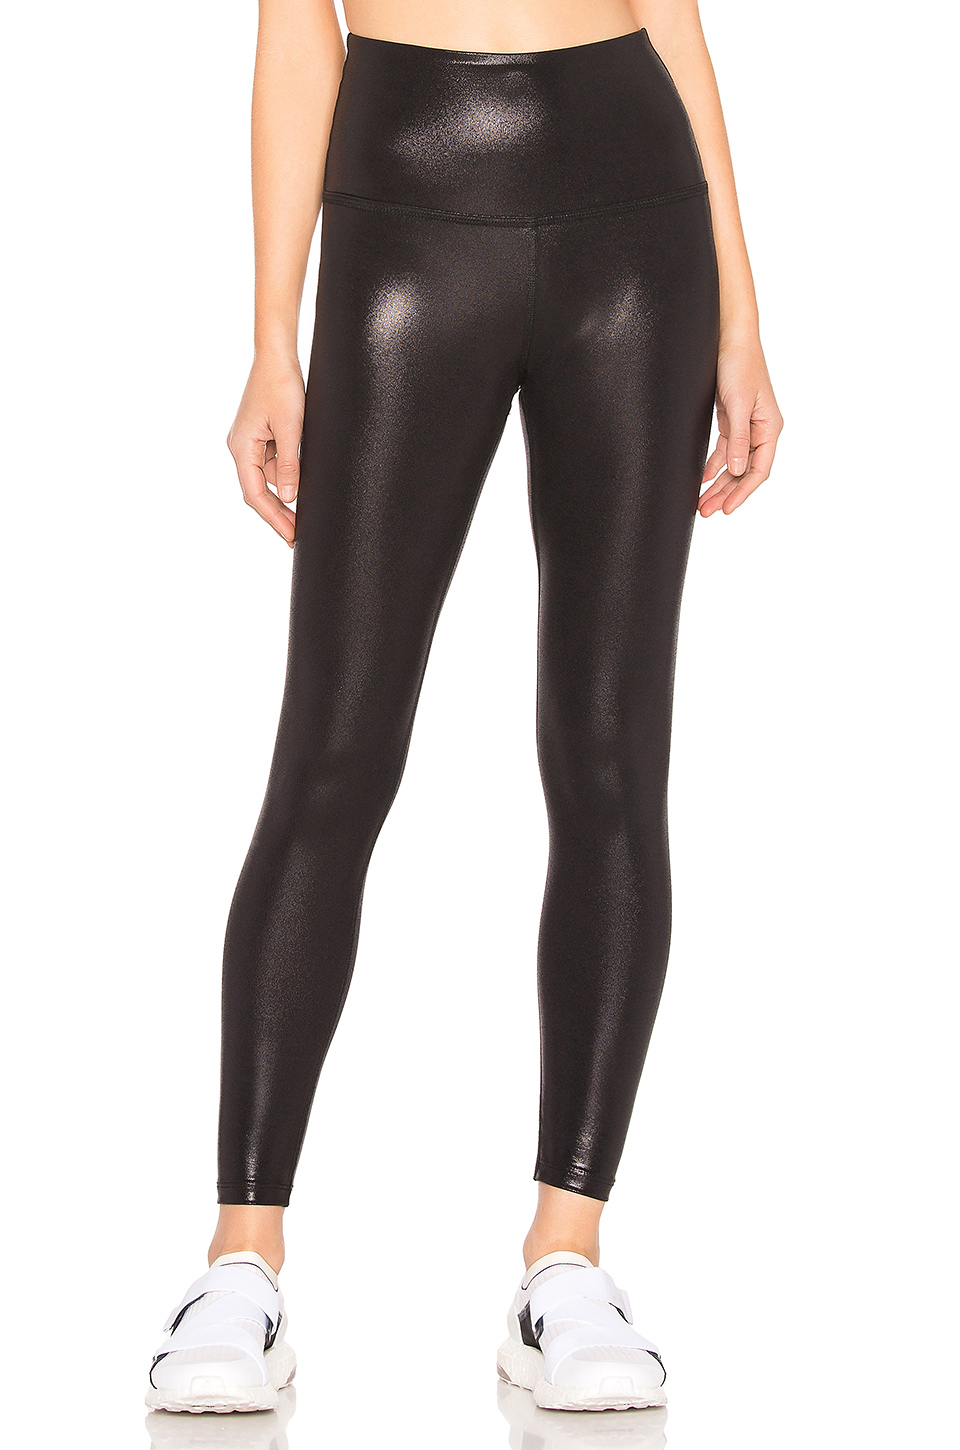 13f2b6fc47ff1 Buy Original Beyond Yoga Pearlized High Waisted Midi Legging at ...